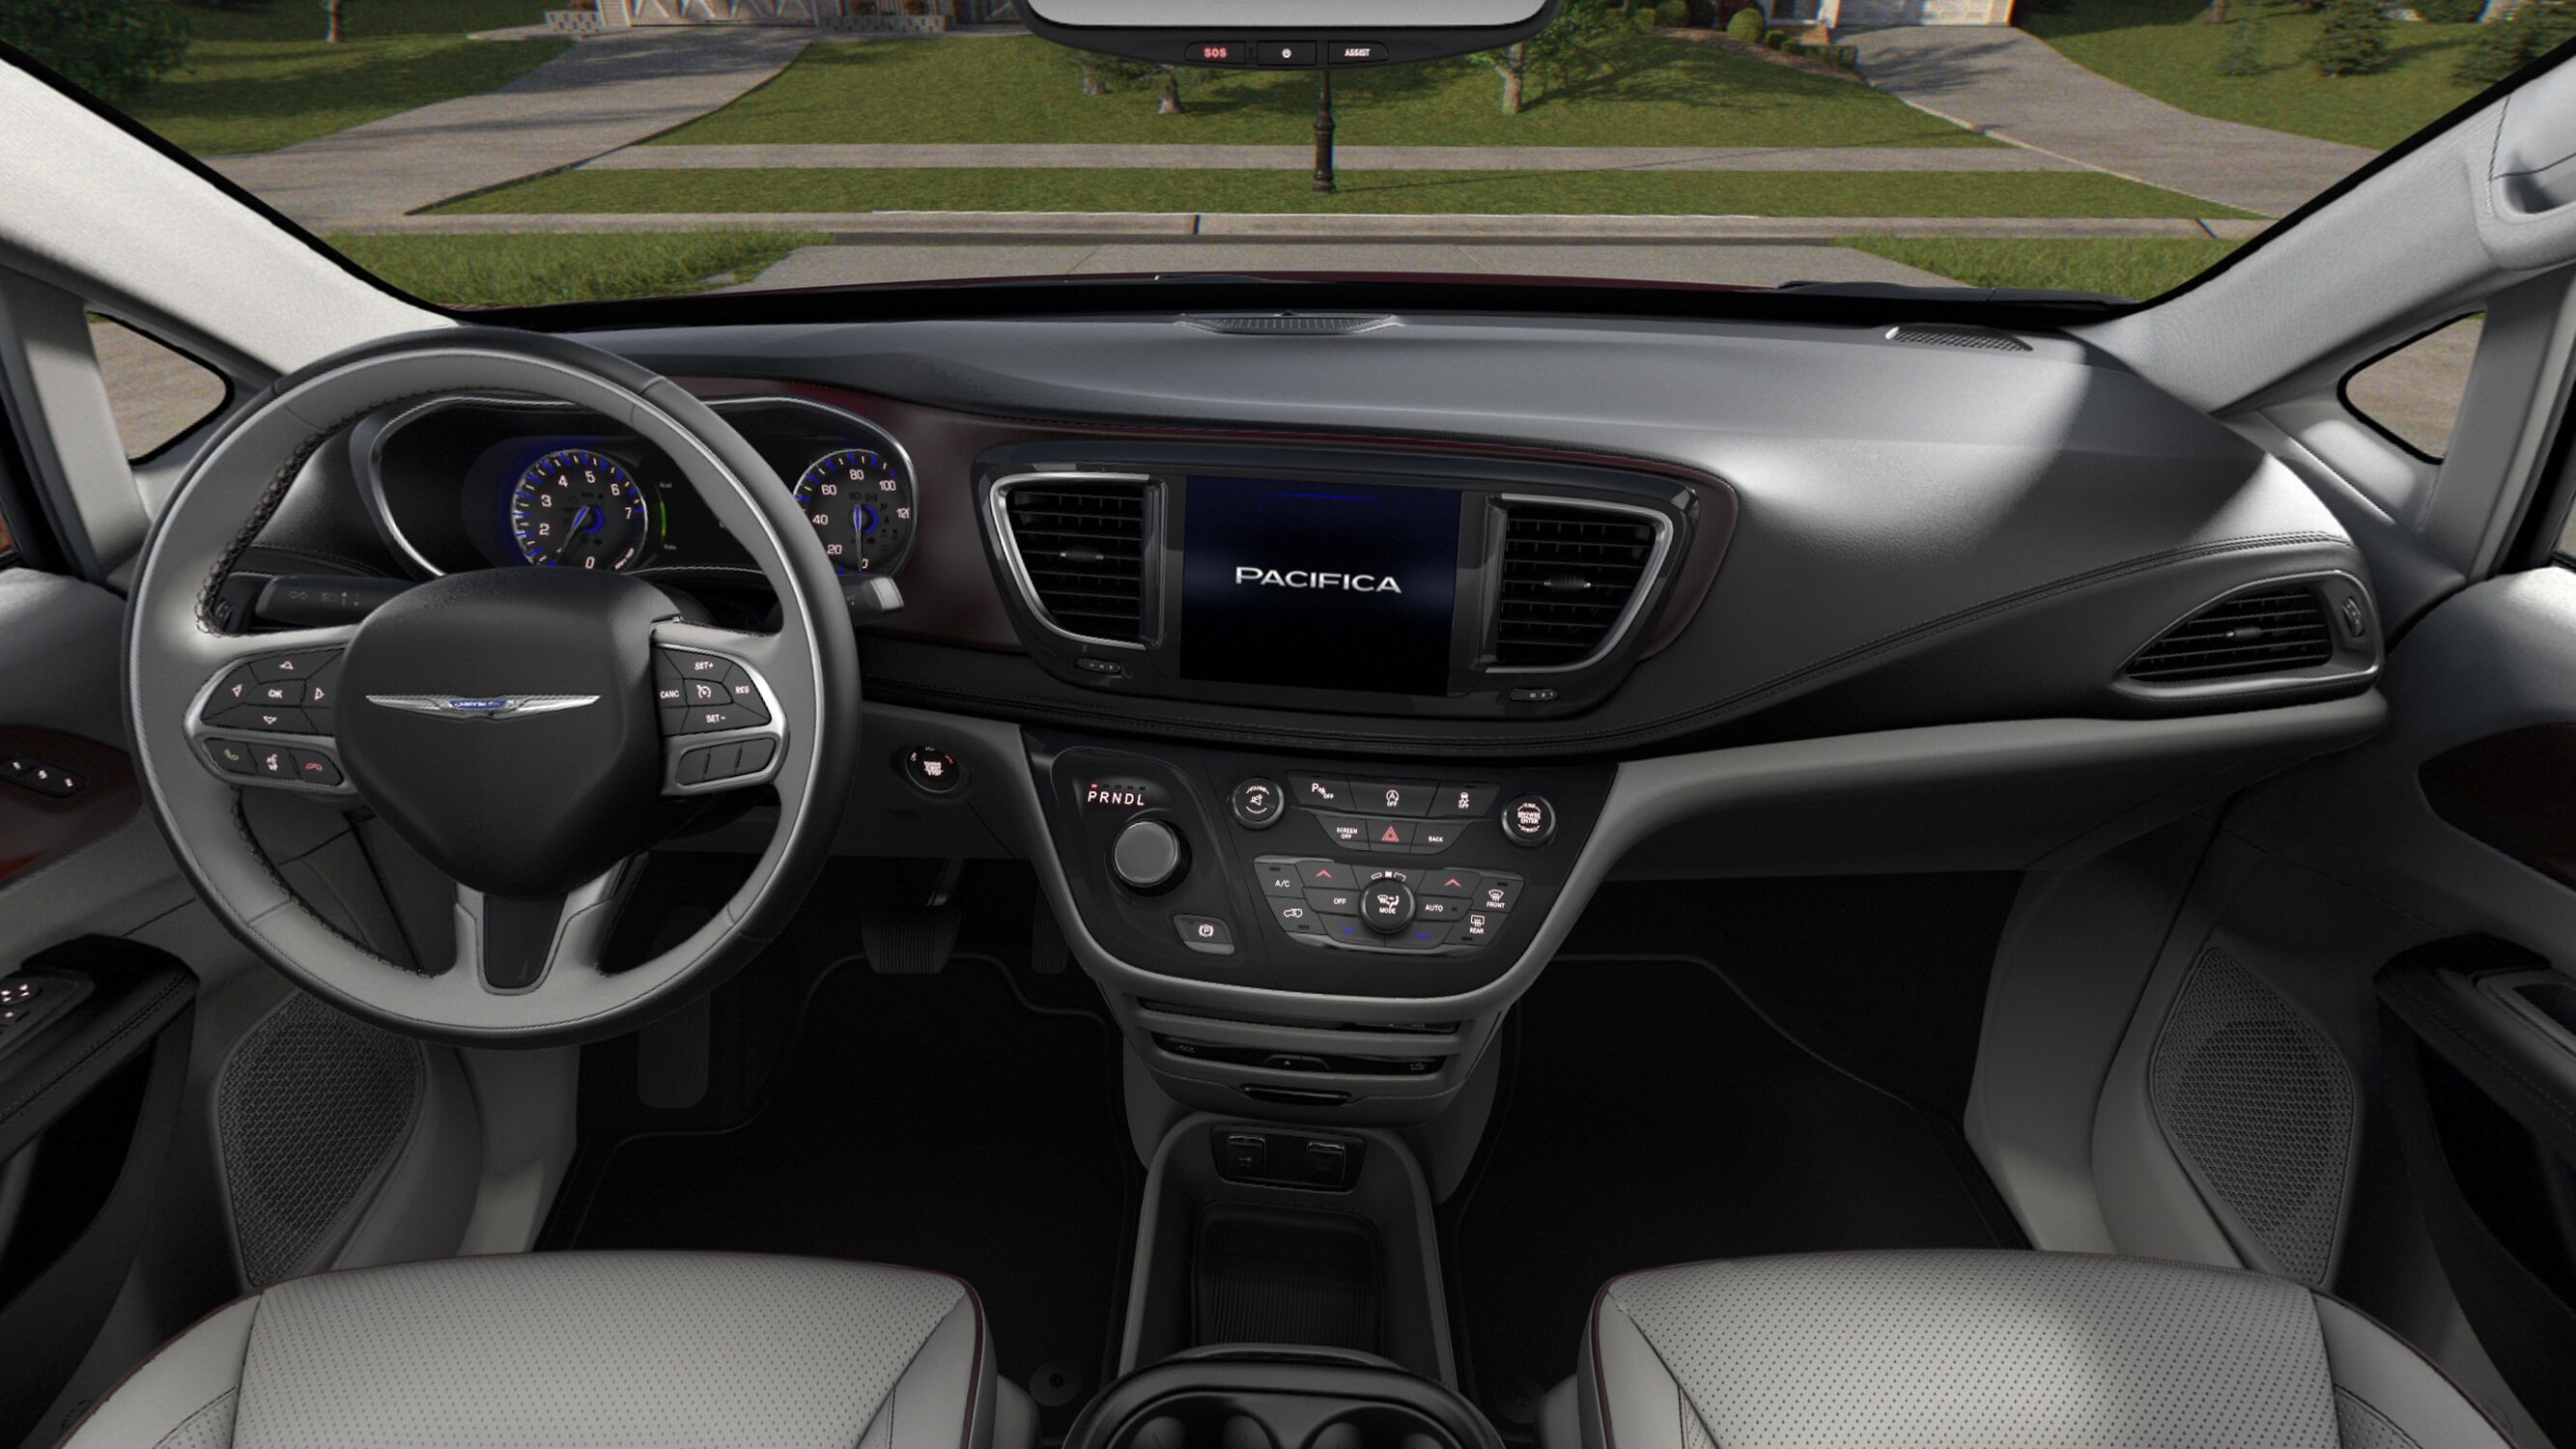 2019 Chrysler Pacifica Limited Irvine Auto Center